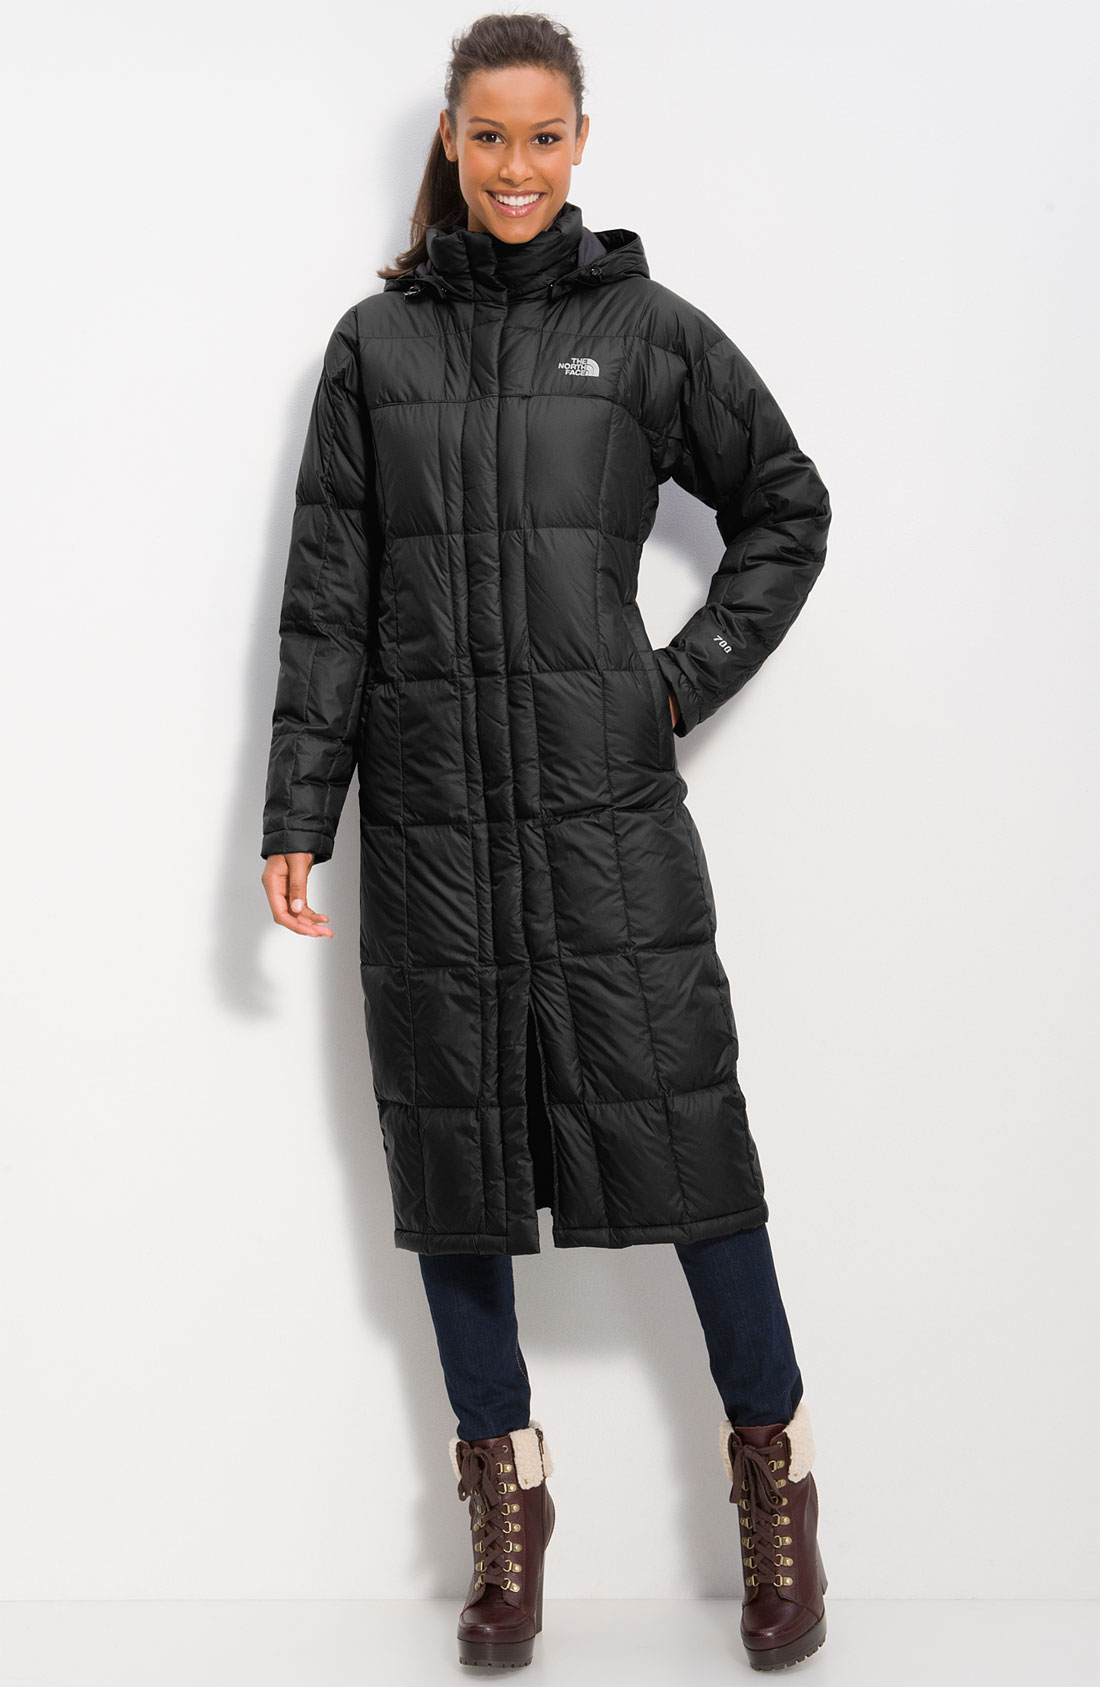 women s long down coat – Shopping images